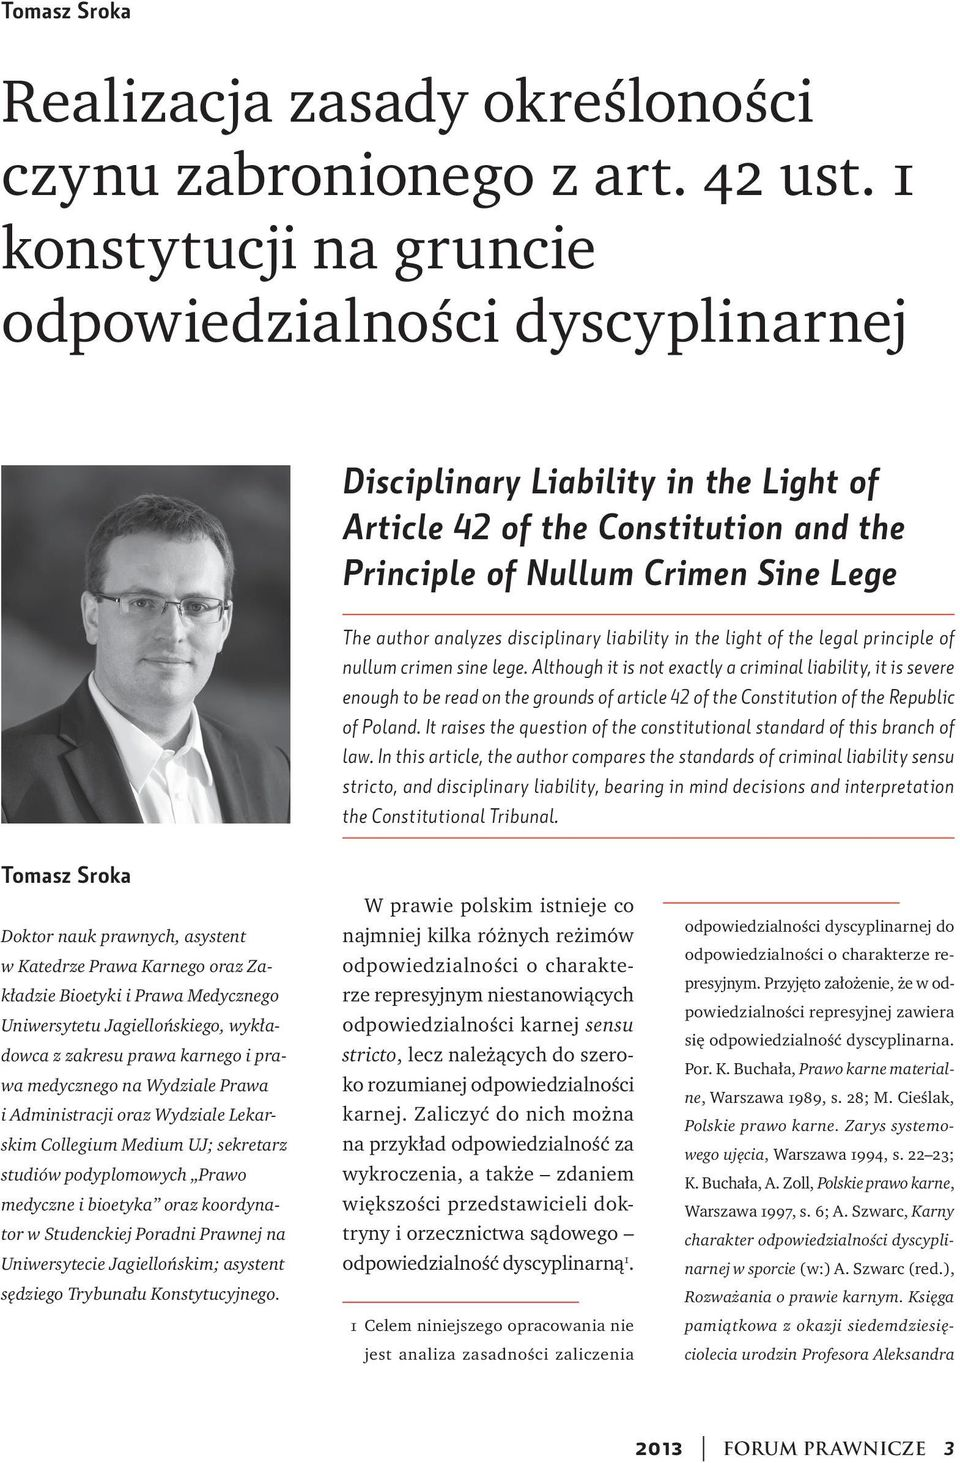 disciplinary liability in the light of the legal principle of nullum crimen sine lege.